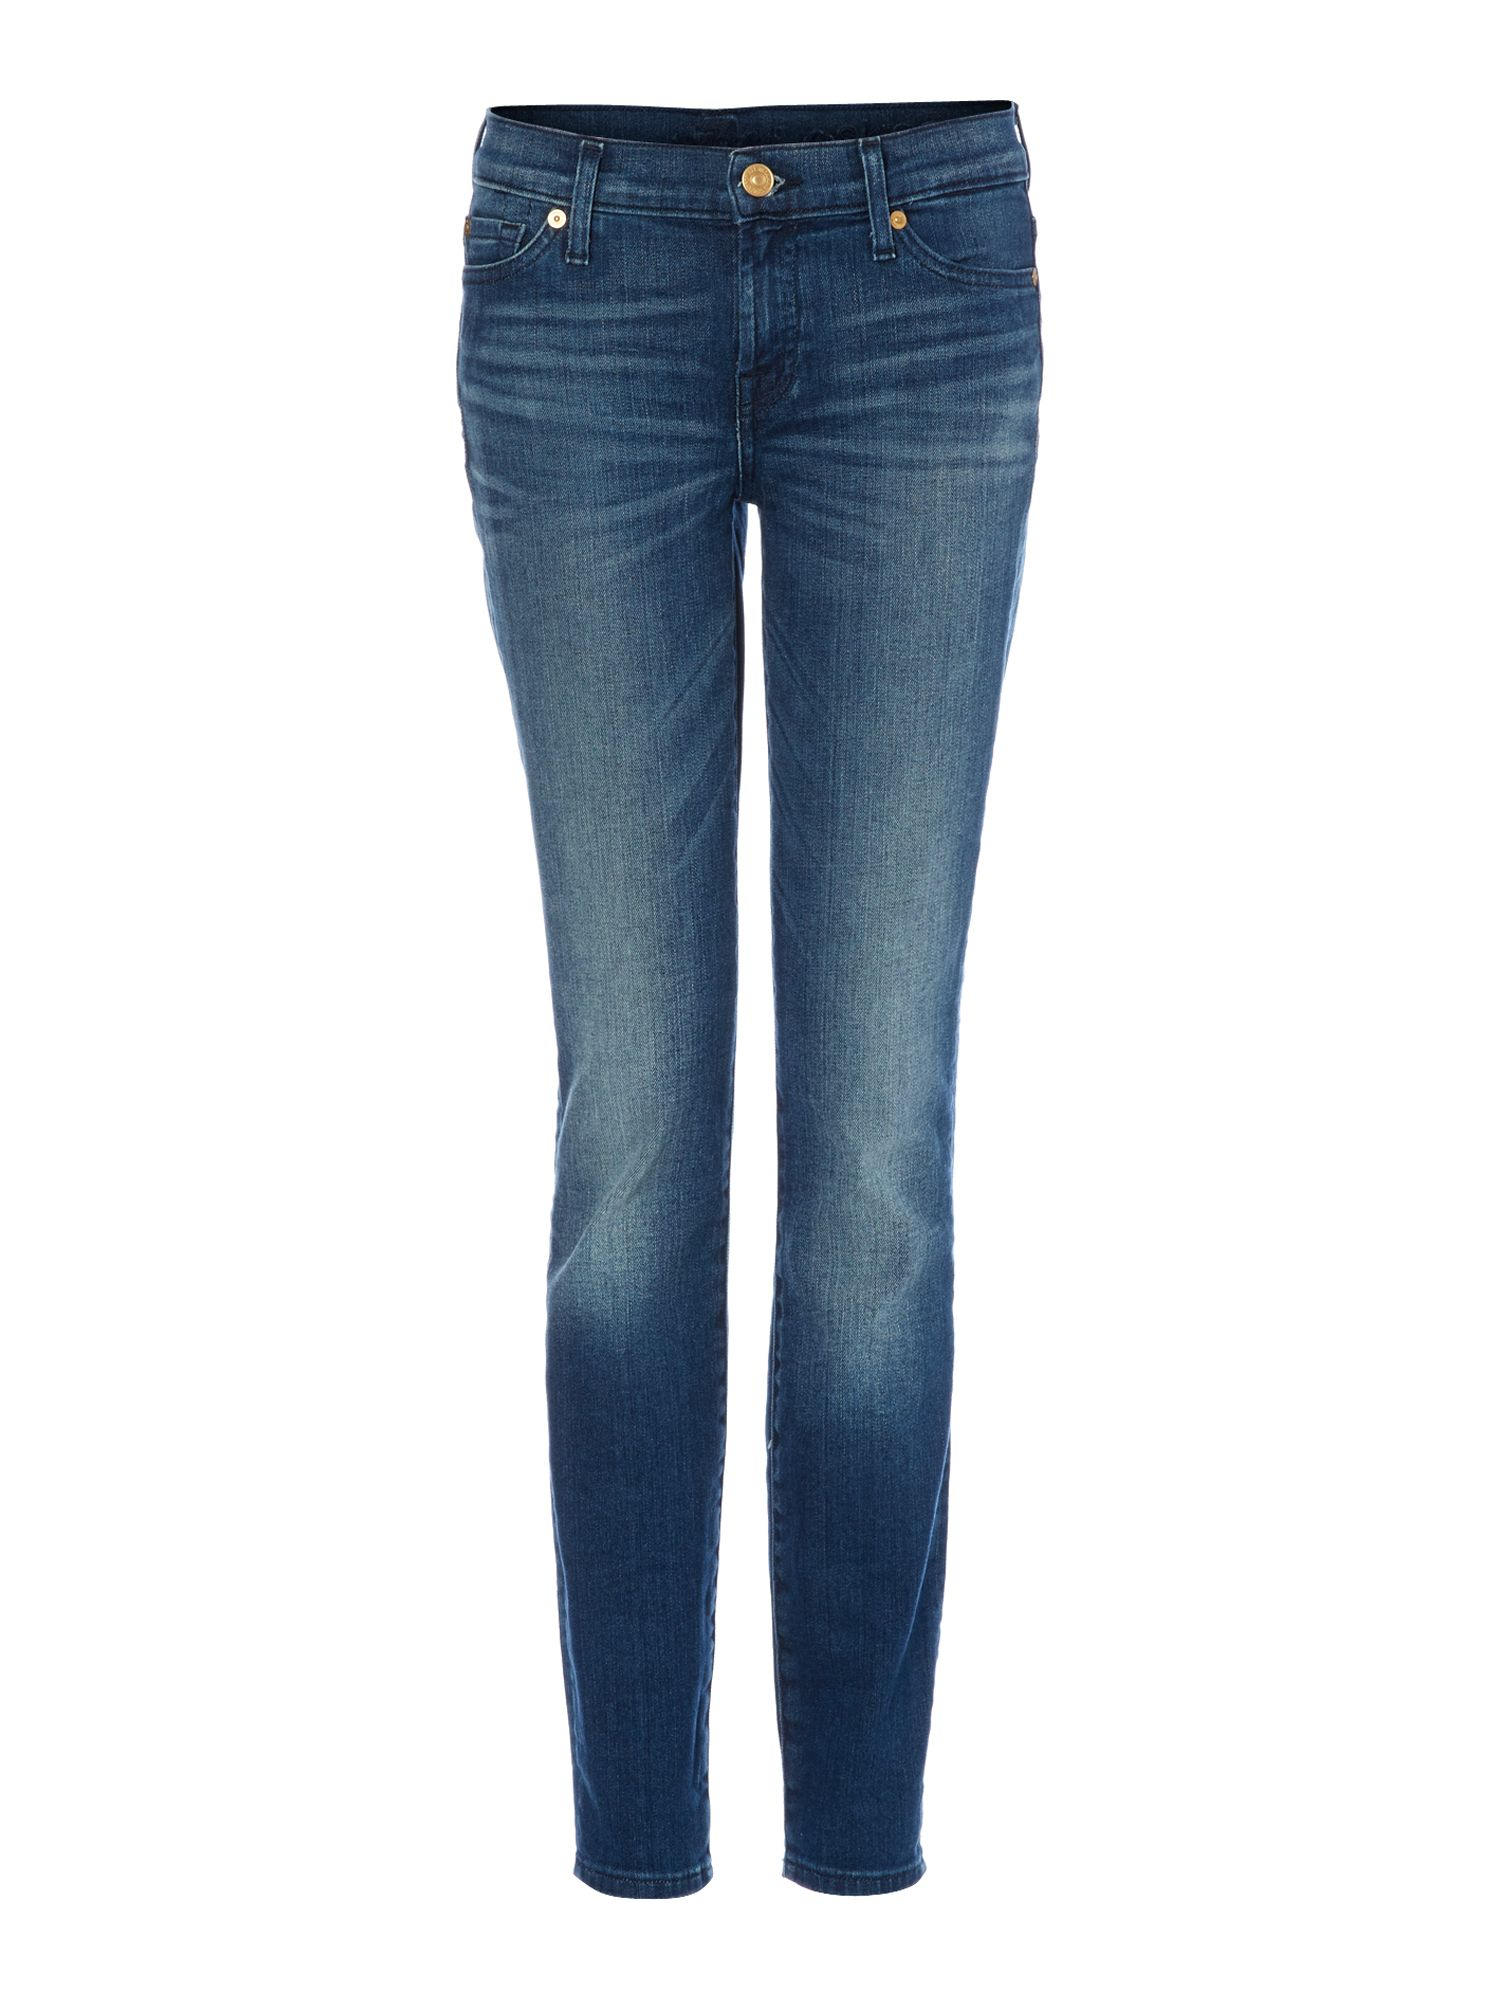 7 For All Mankind 7 For All Mankind The Skinny jeans in Dakota Mid, Denim Mid Wash